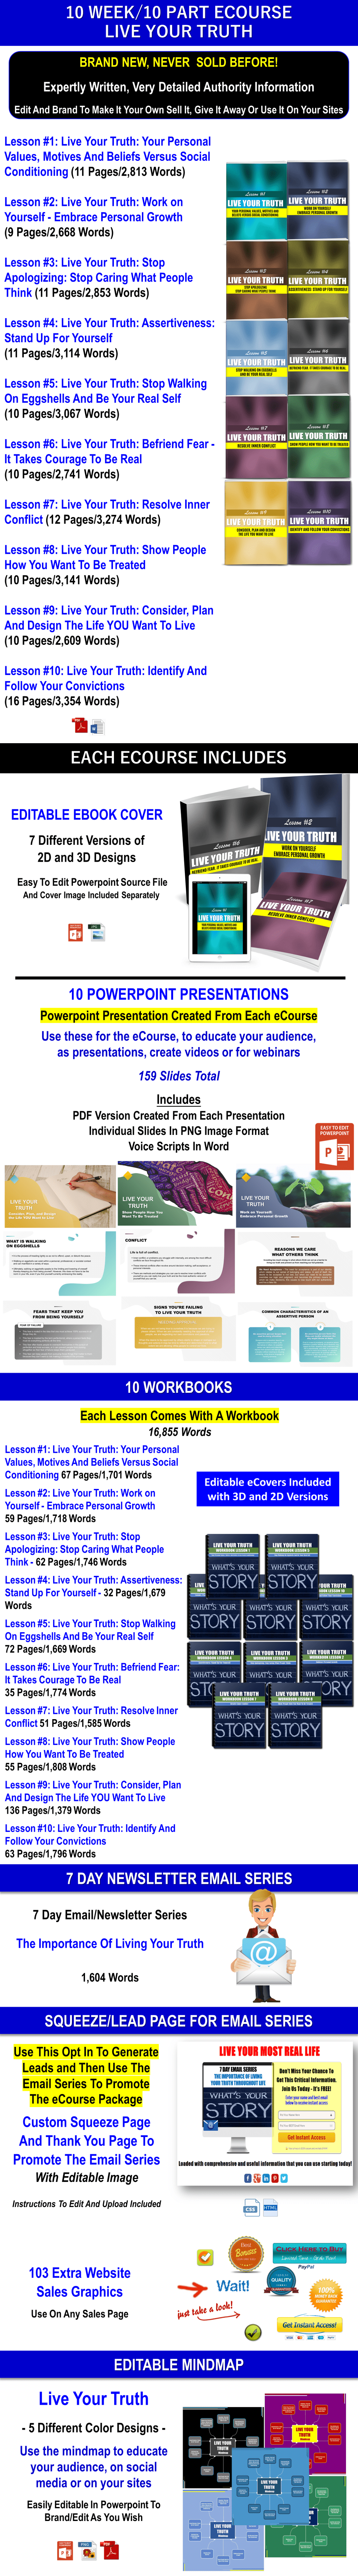 Live Your Truth 275 Piece PLR eCourse Package 1